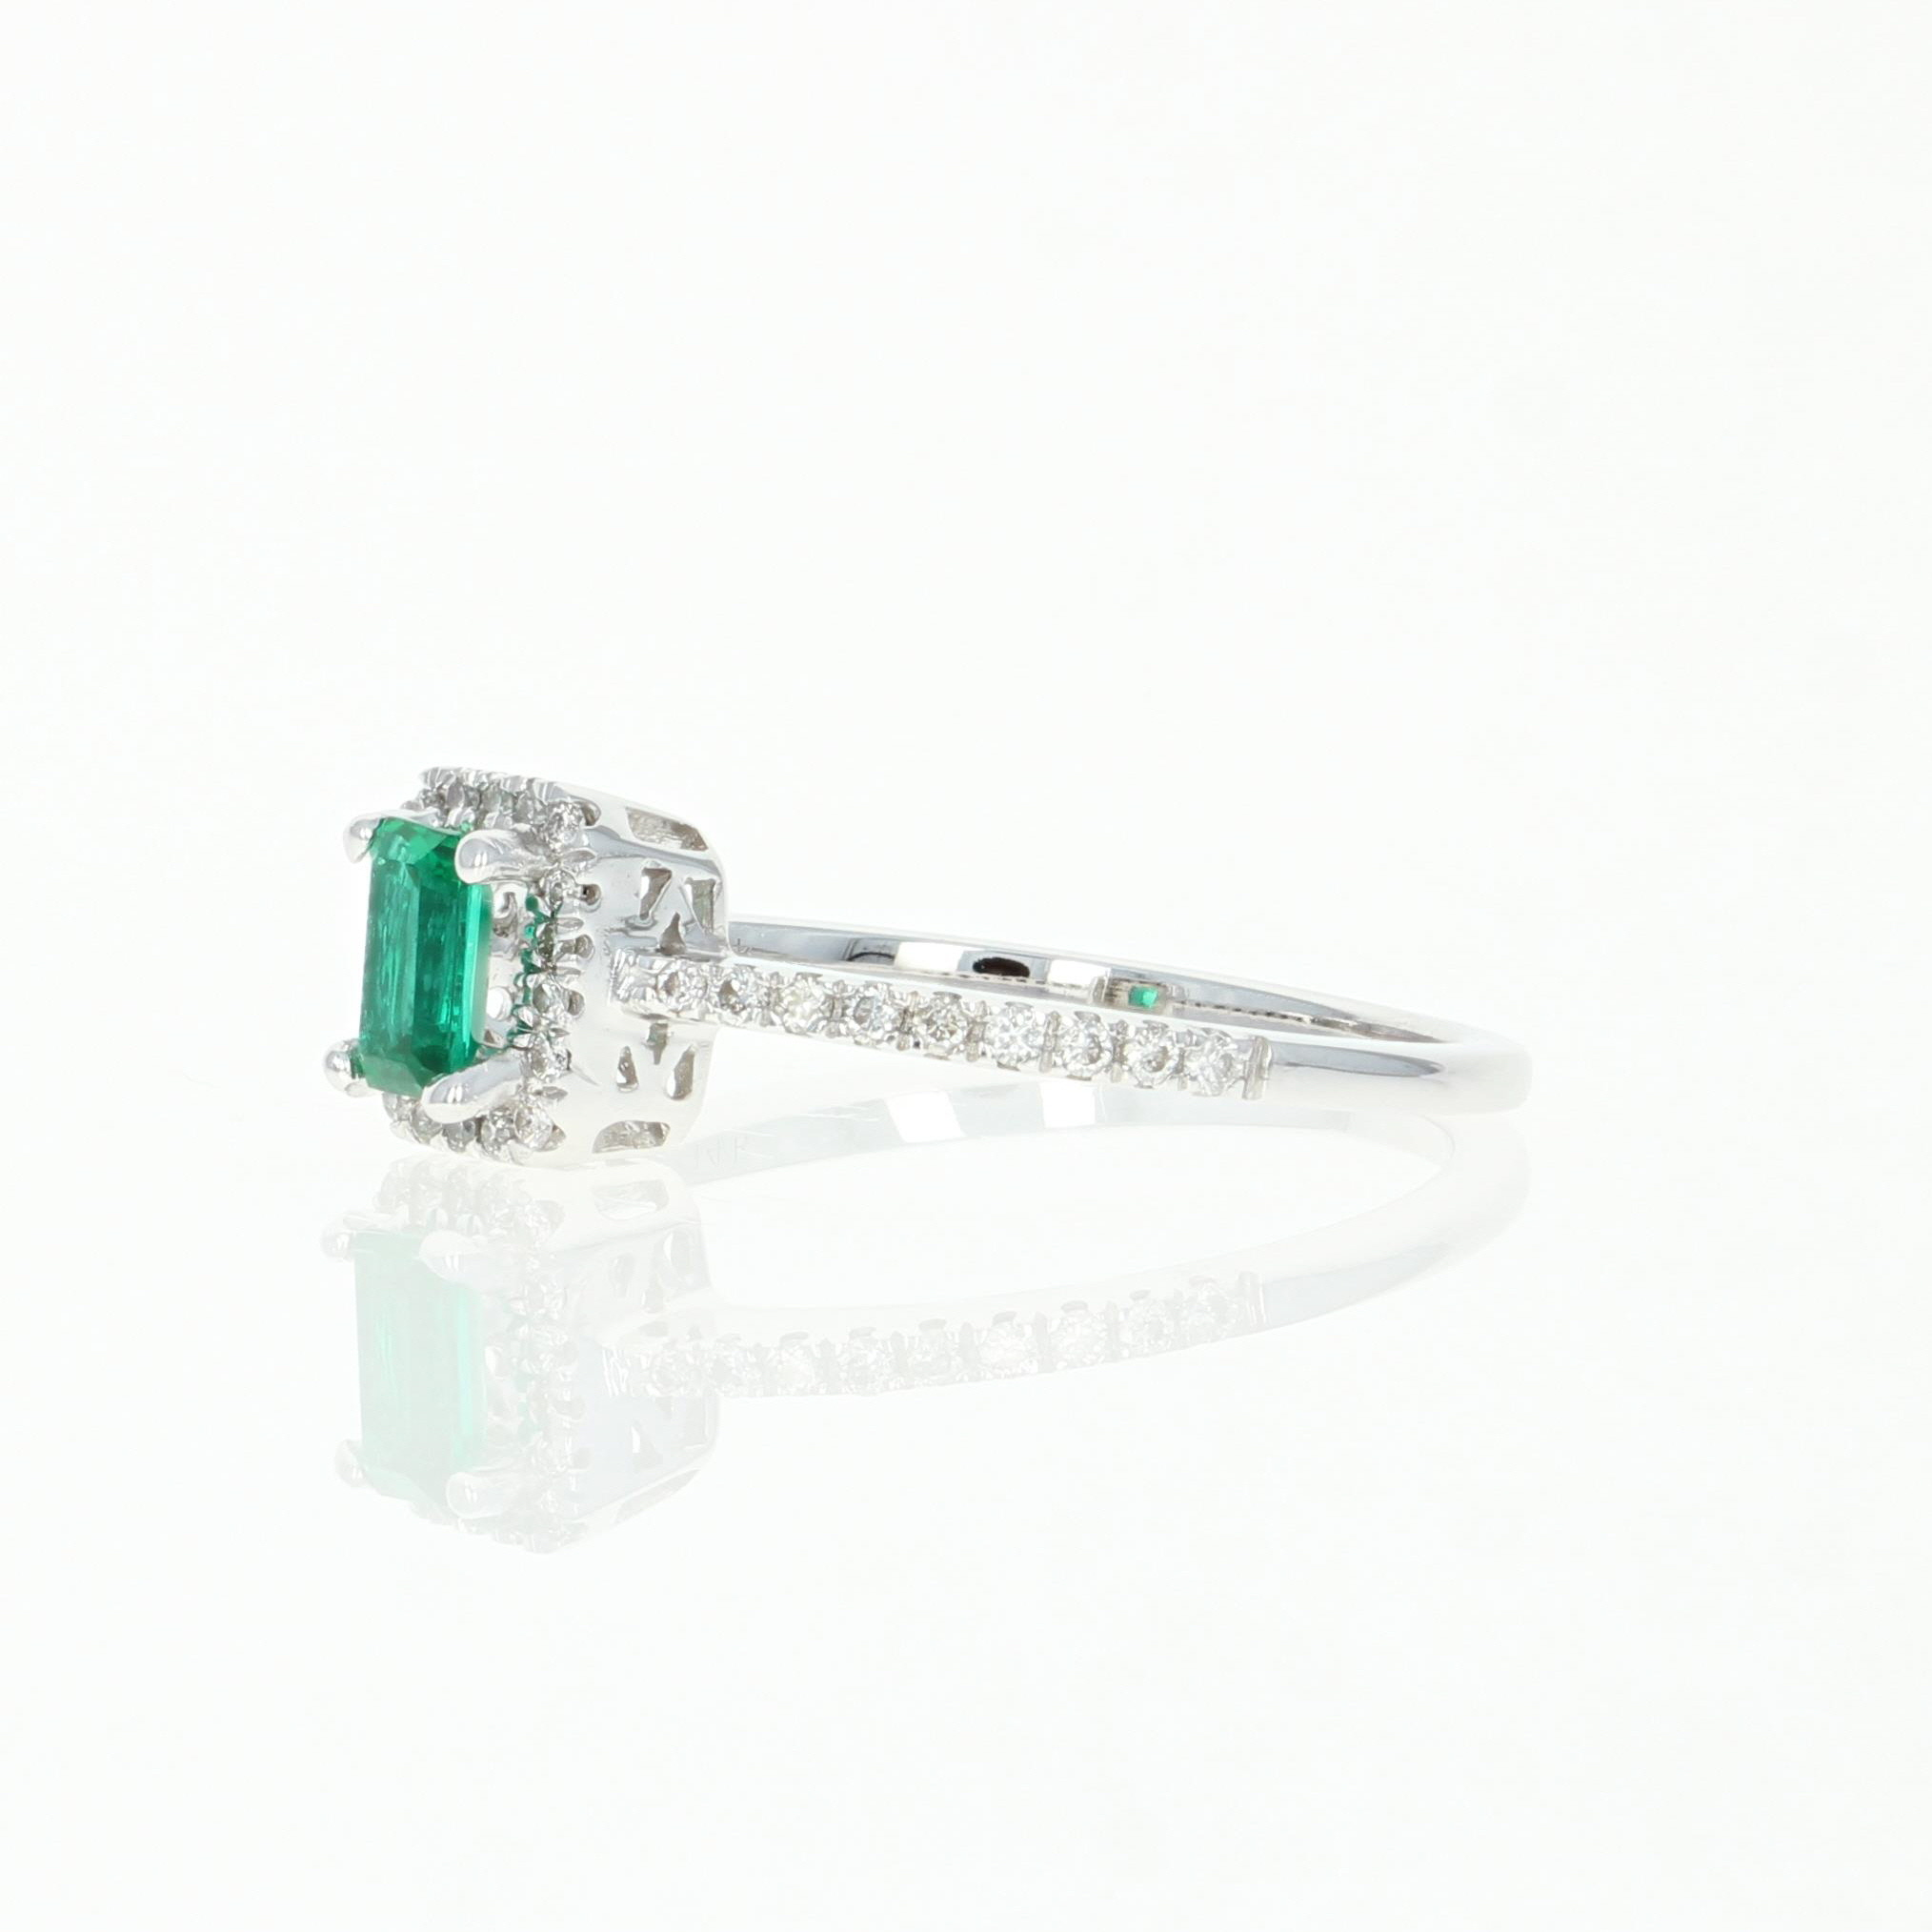 emerald rings differences between the real and synthetic. Synthetic Emerald \u0026 Diamond Halo Ring - 14k White Gold Cut .45ctw Rings Differences Between The Real And